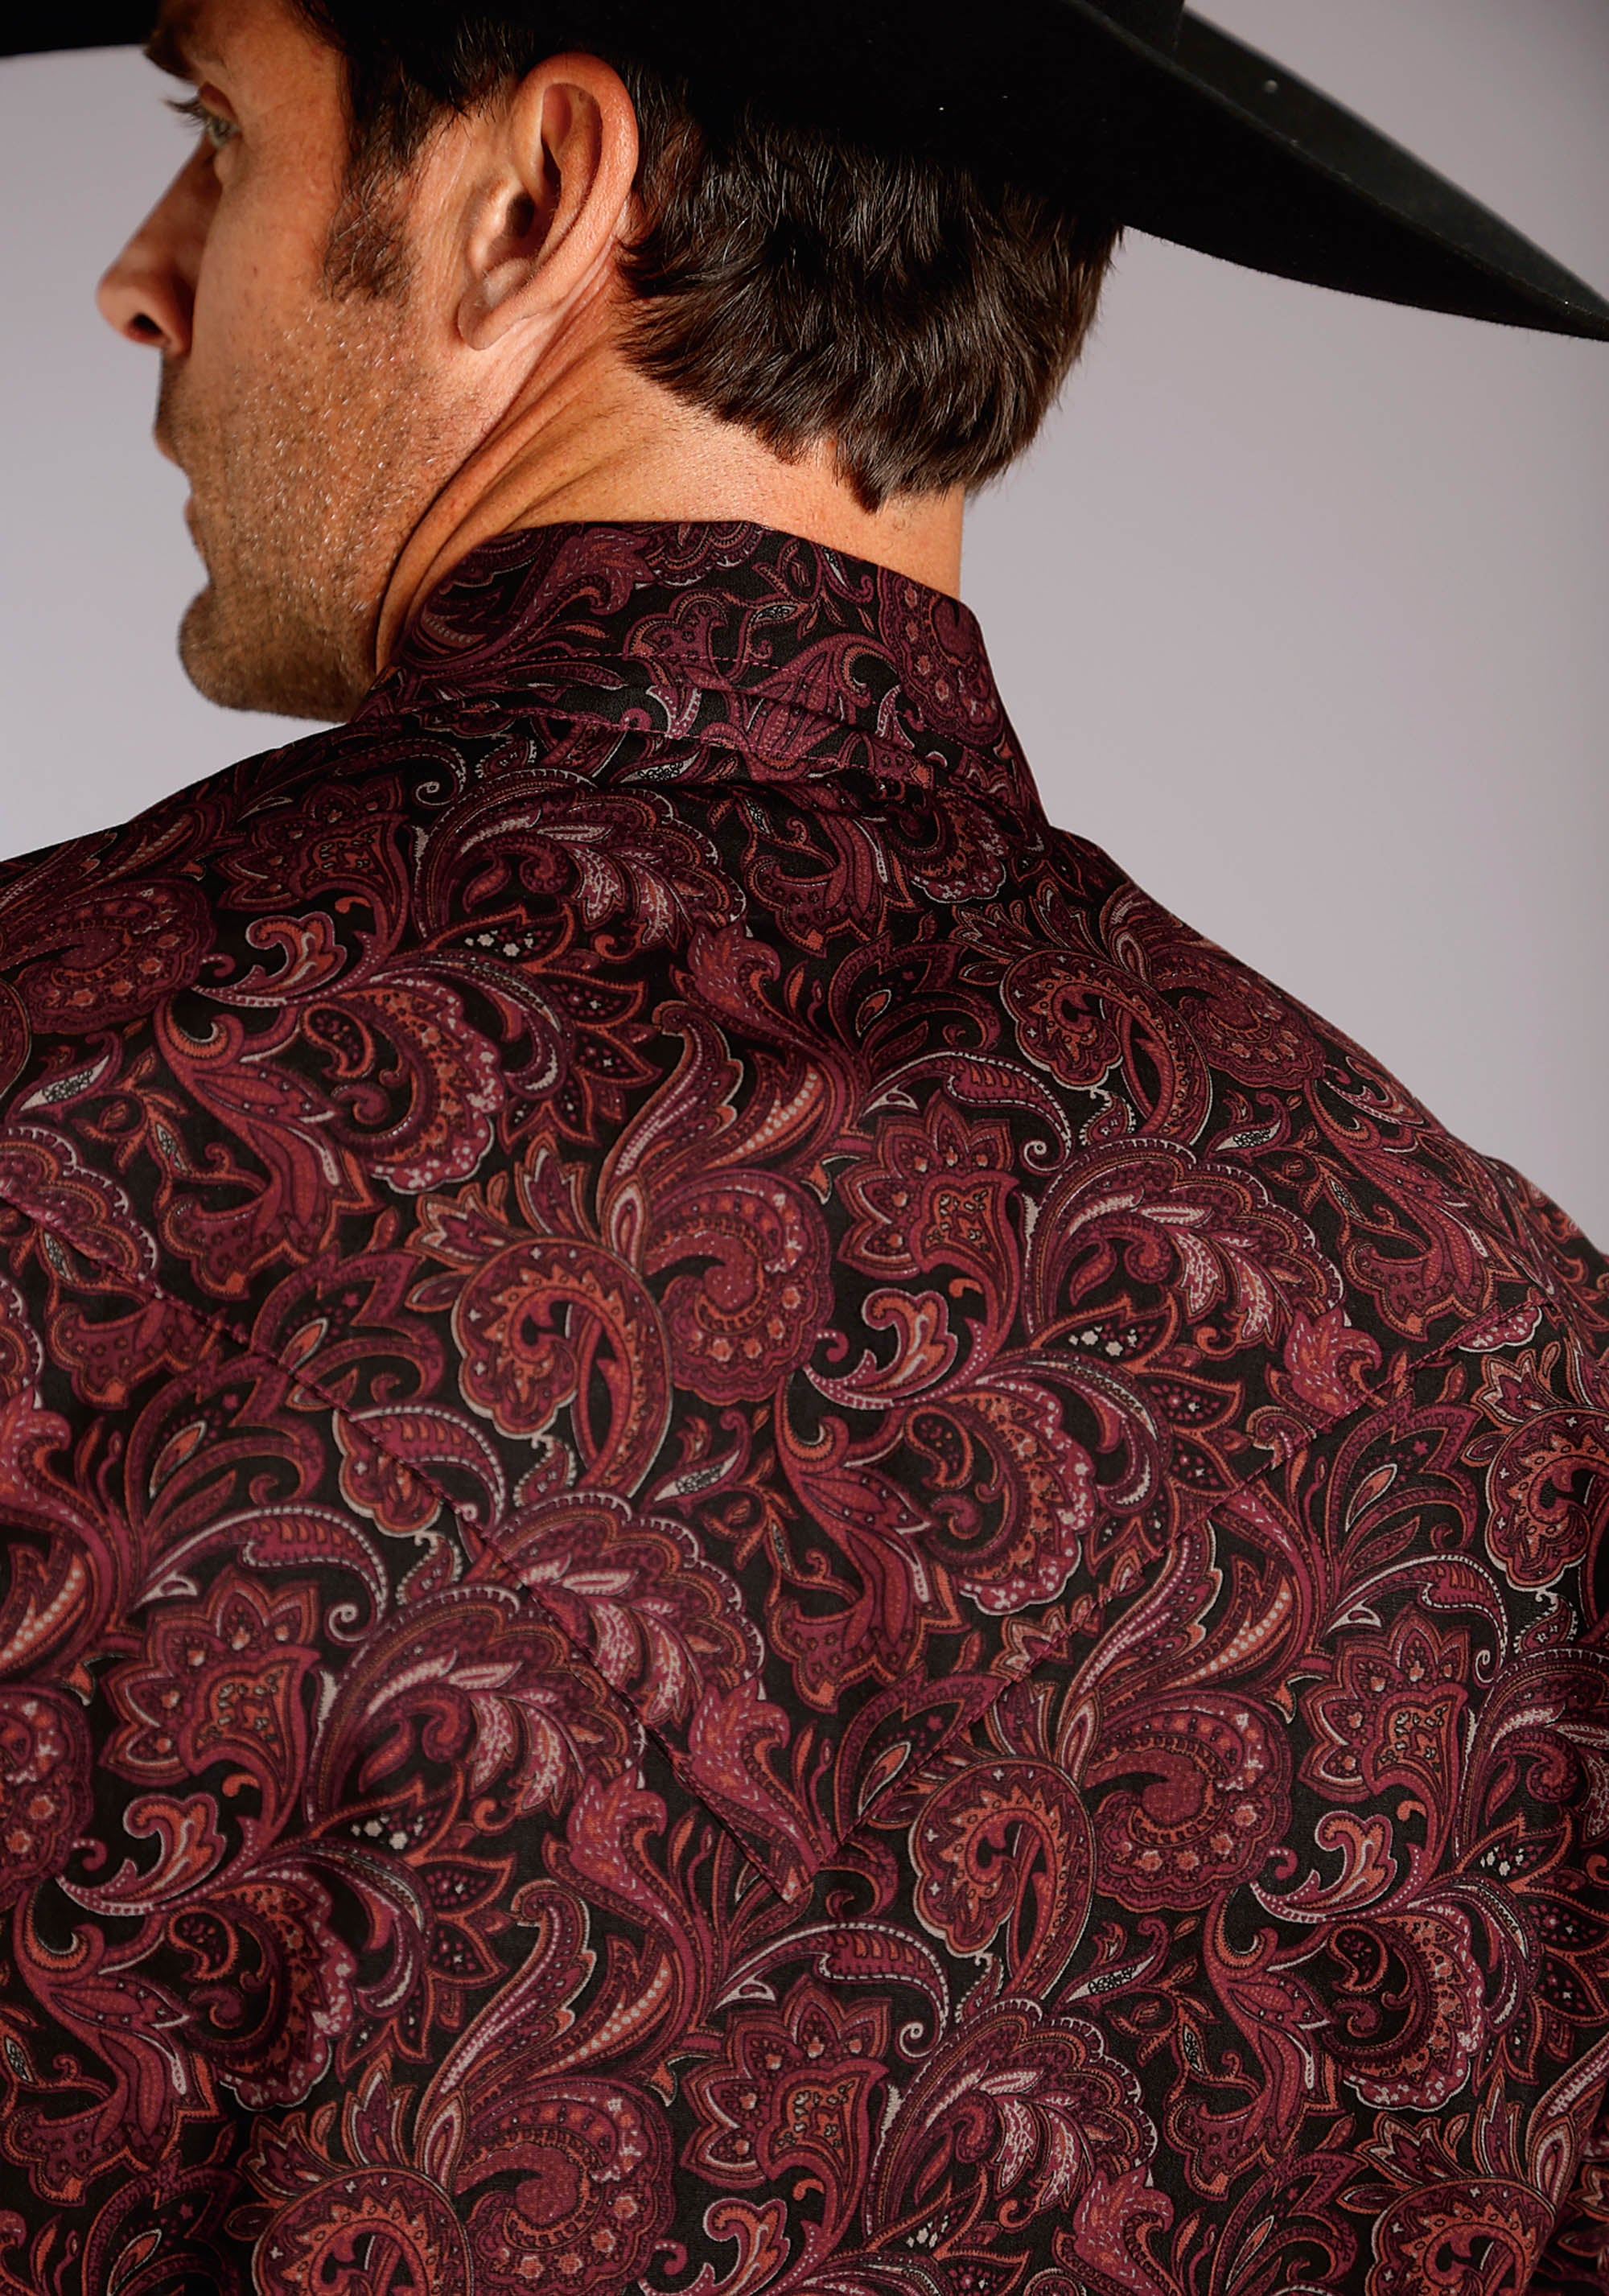 STETSON MENS WINE 2212 WINE PAISLEY GROUP 2